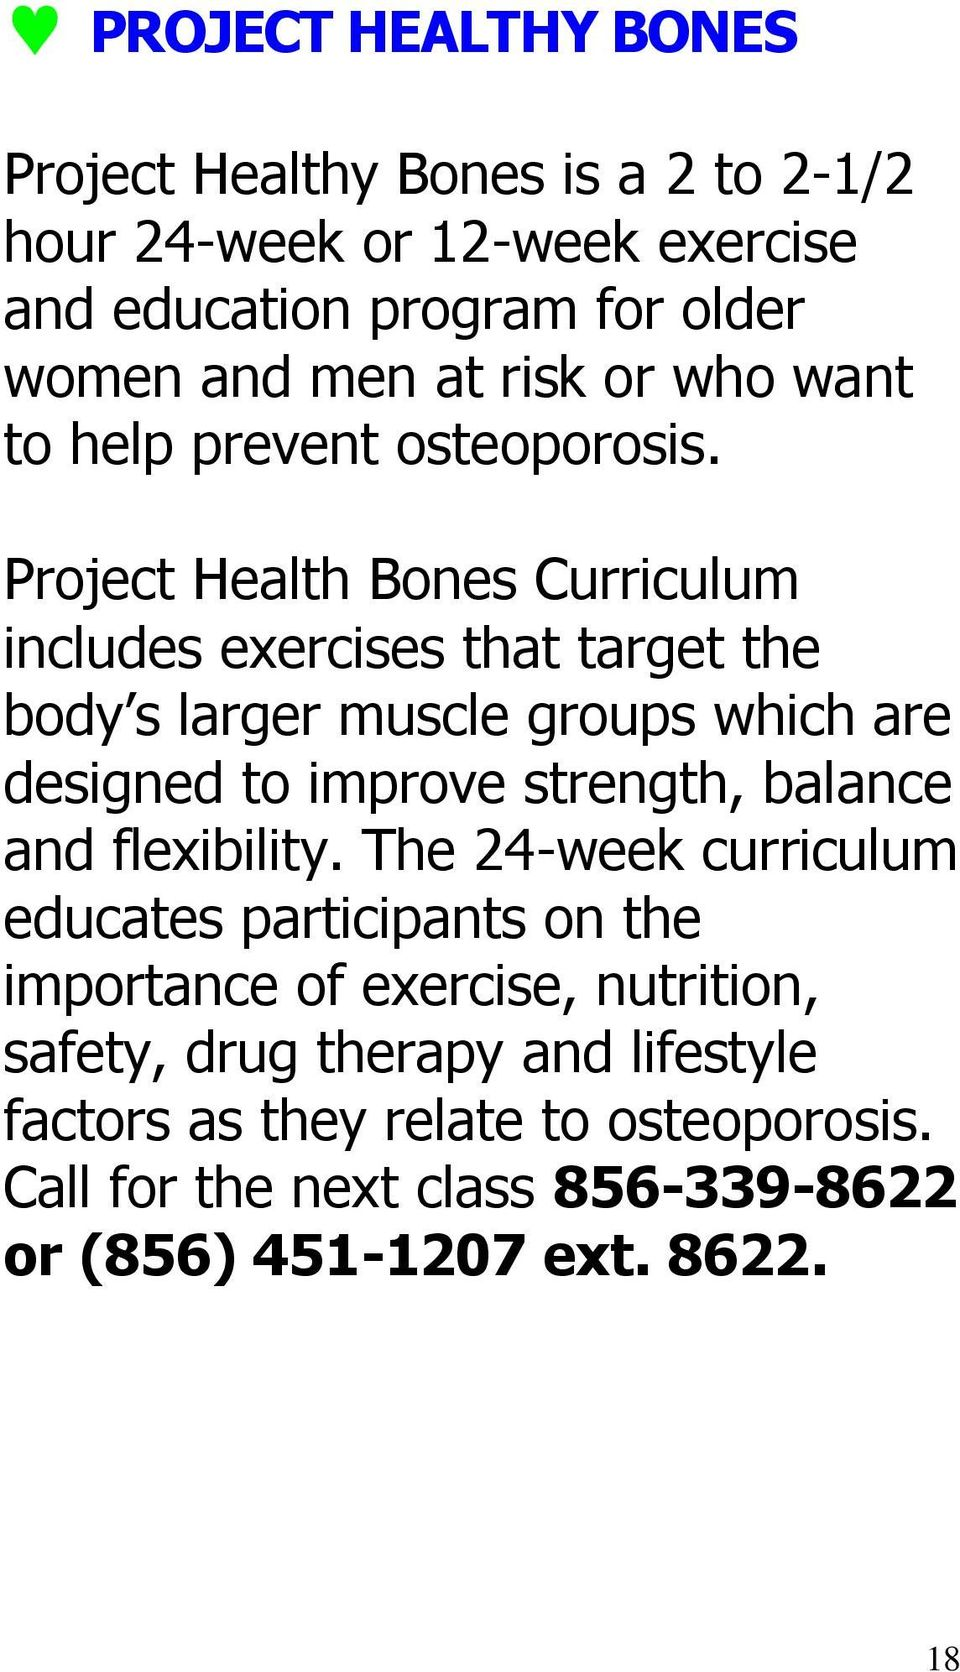 Project Health Bones Curriculum includes exercises that target the body s larger muscle groups which are designed to improve strength, balance